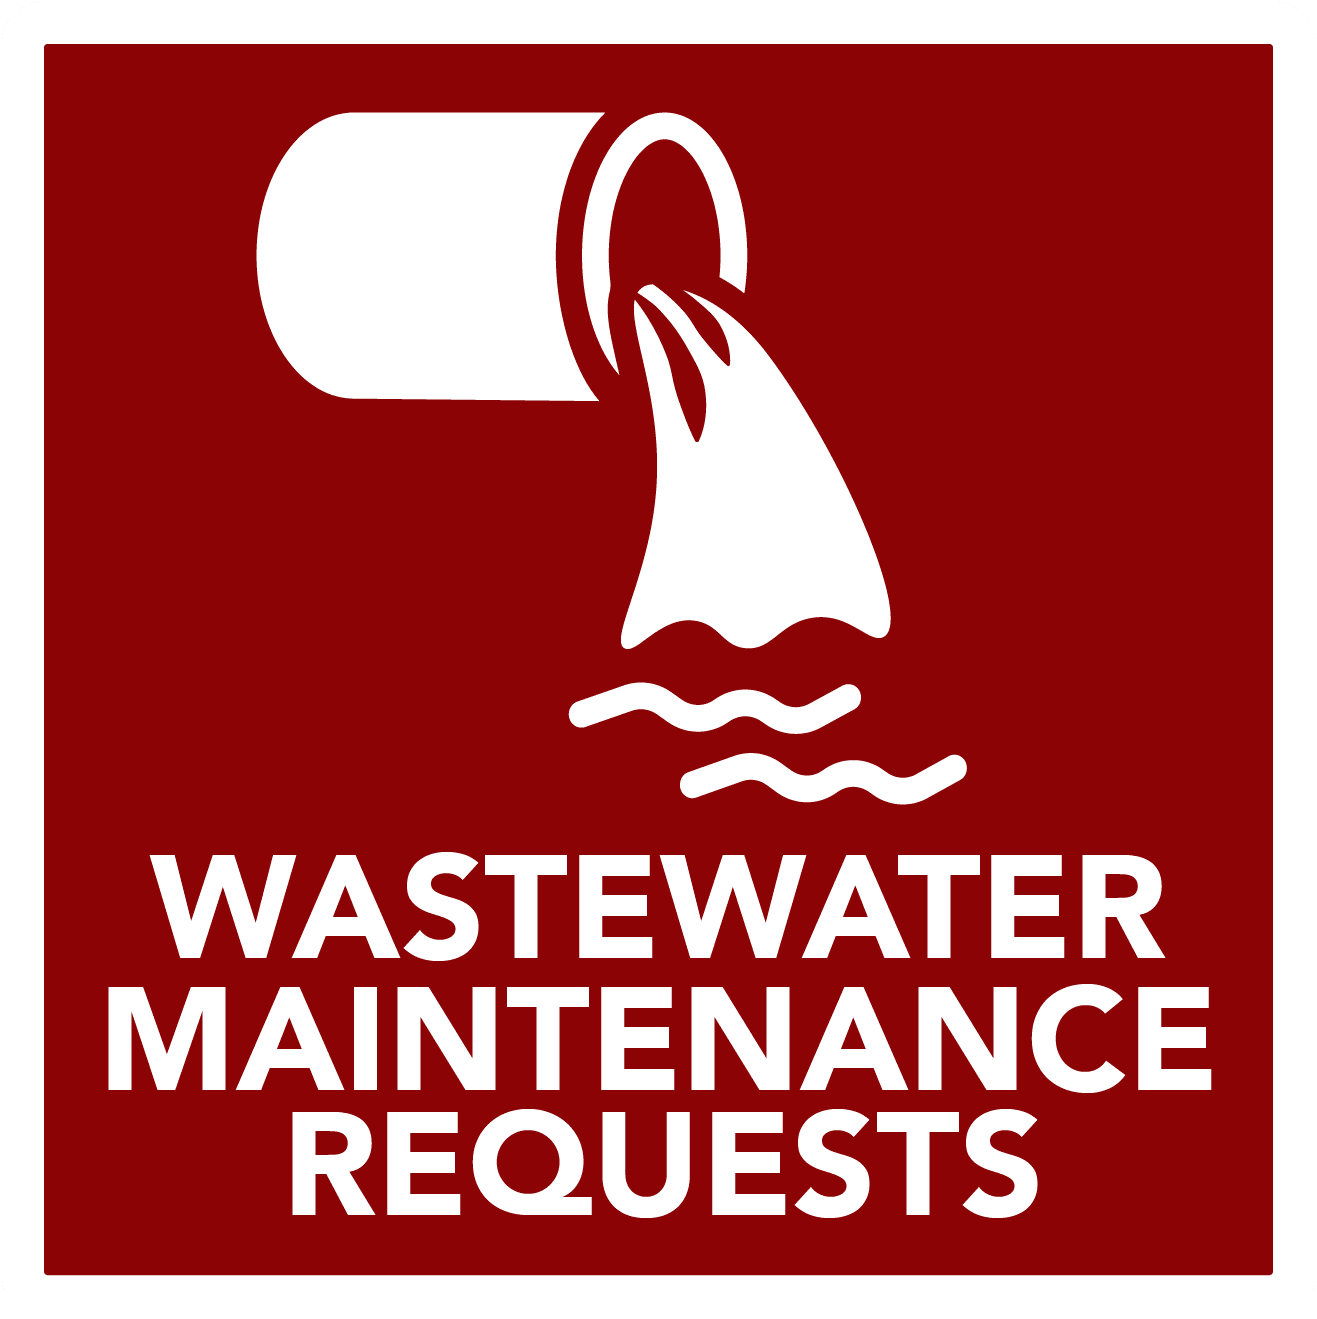 Wastewater Maintenance Requests